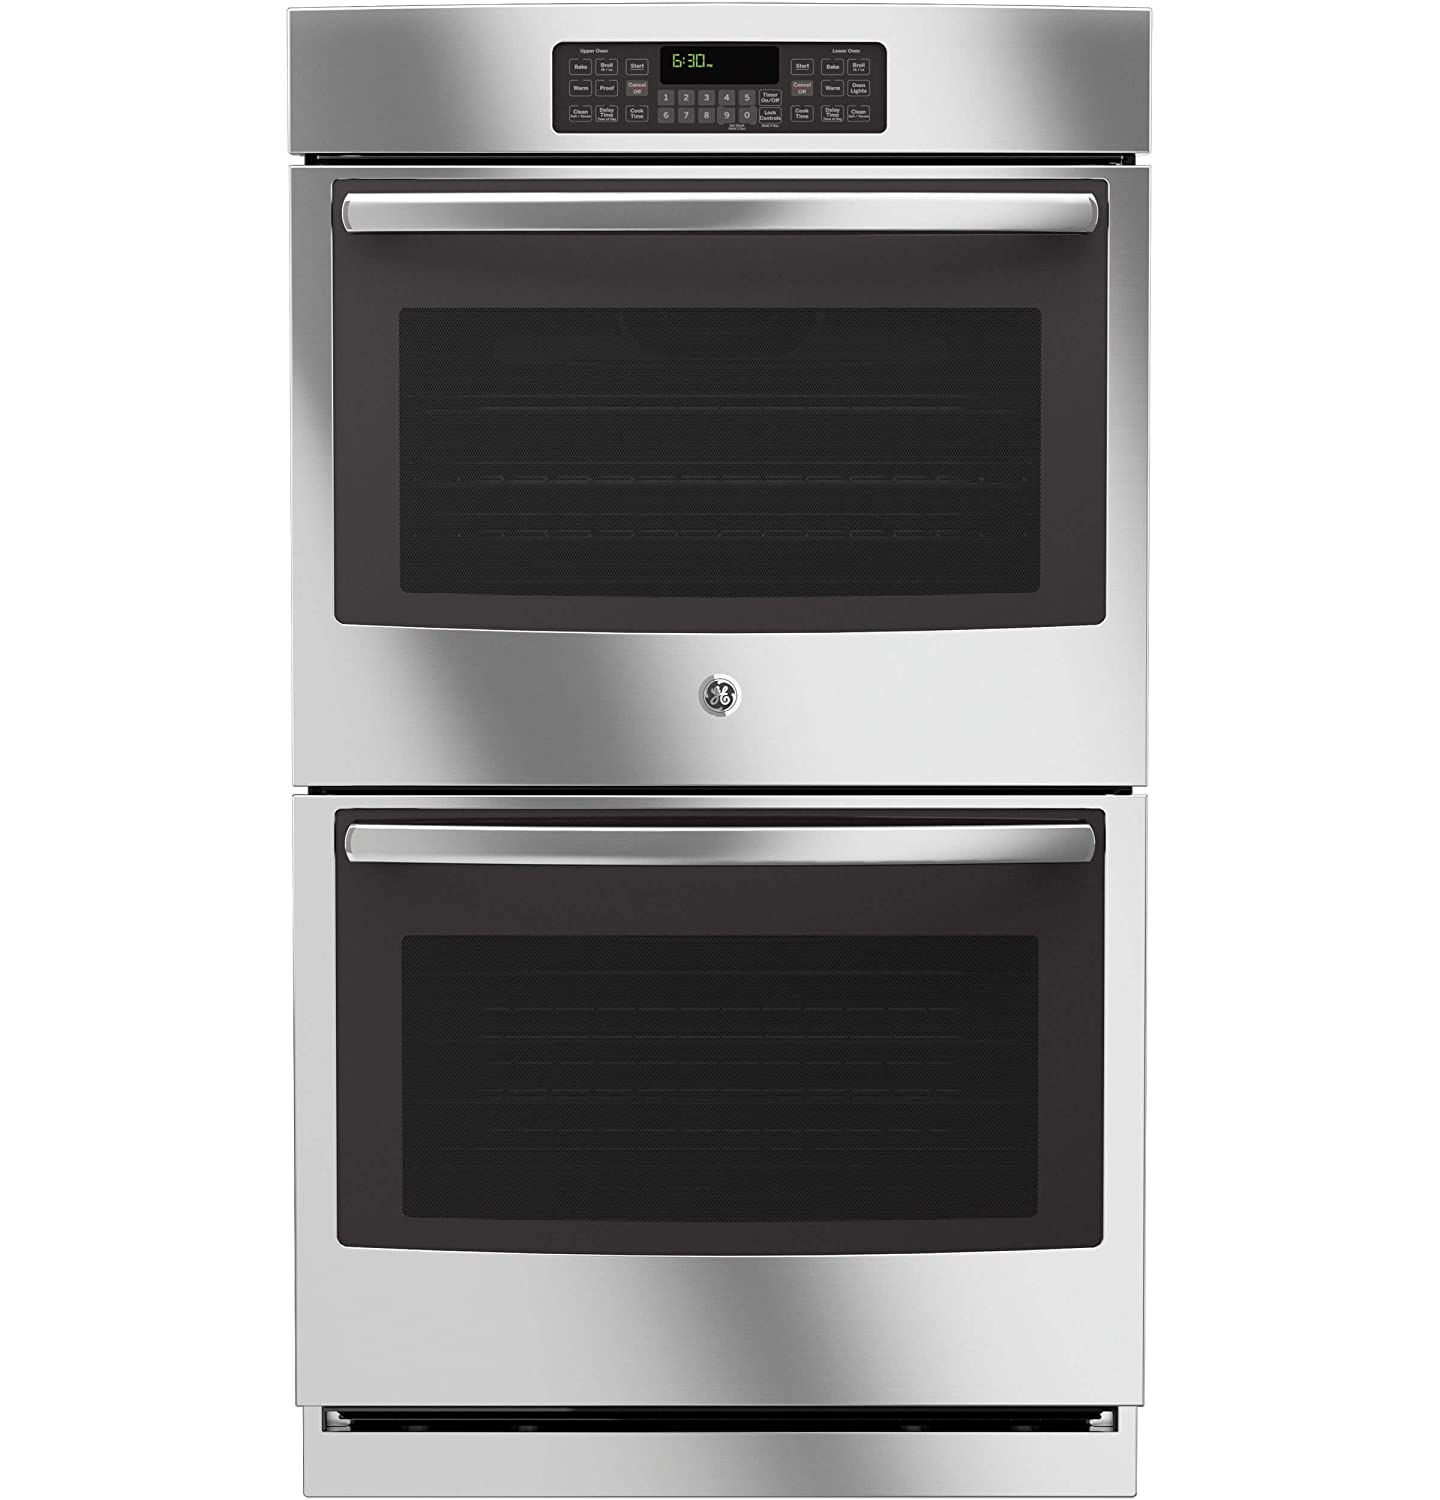 GE JT3500SFSS 30' Stainless Steel Electric Double Wall Oven